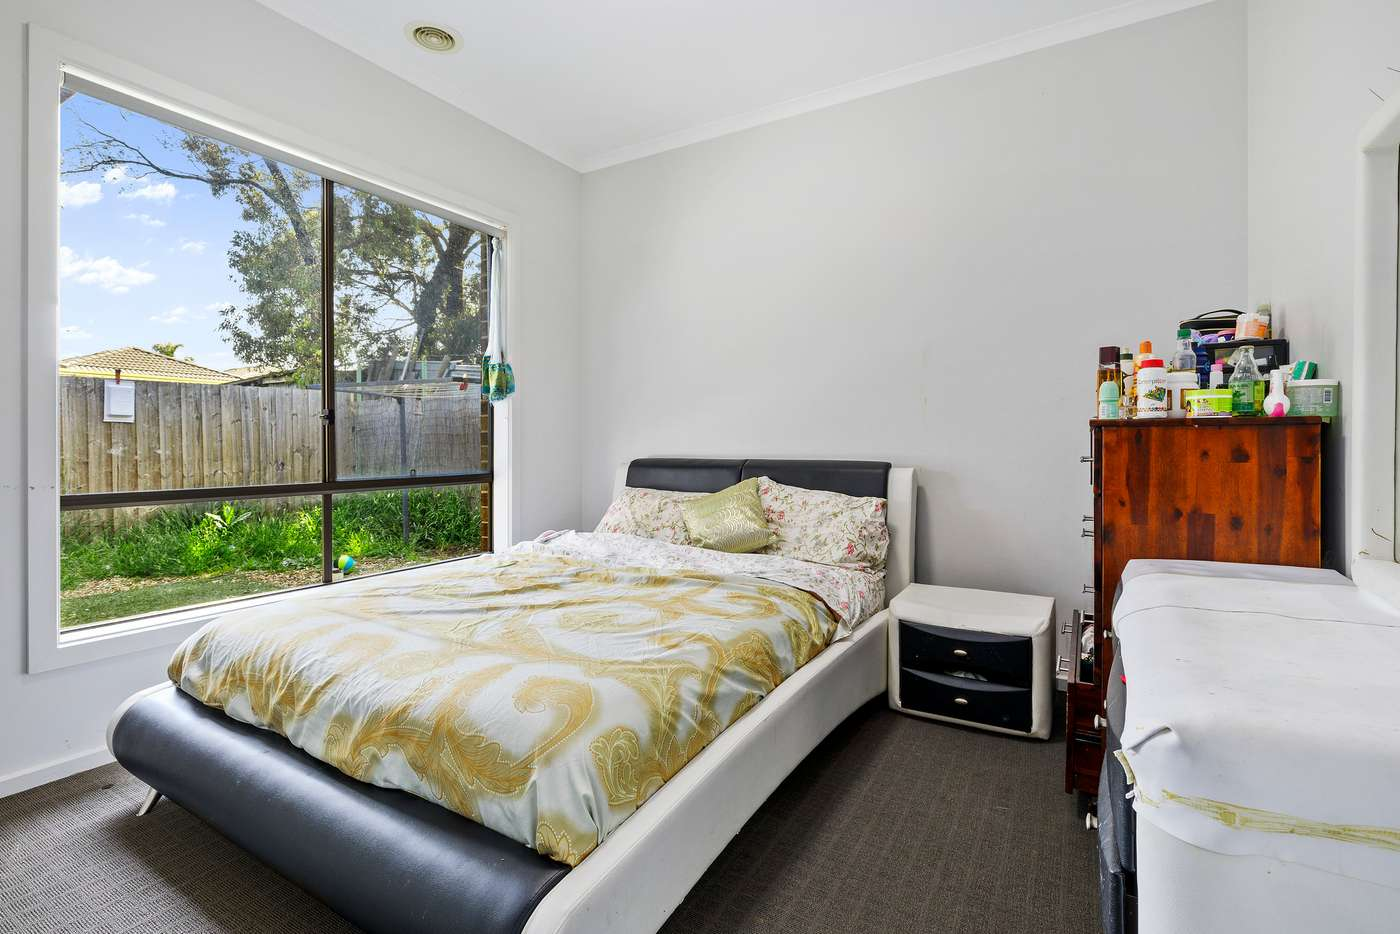 Sixth view of Homely house listing, 3/18 Buckingham Street, Sydenham VIC 3037